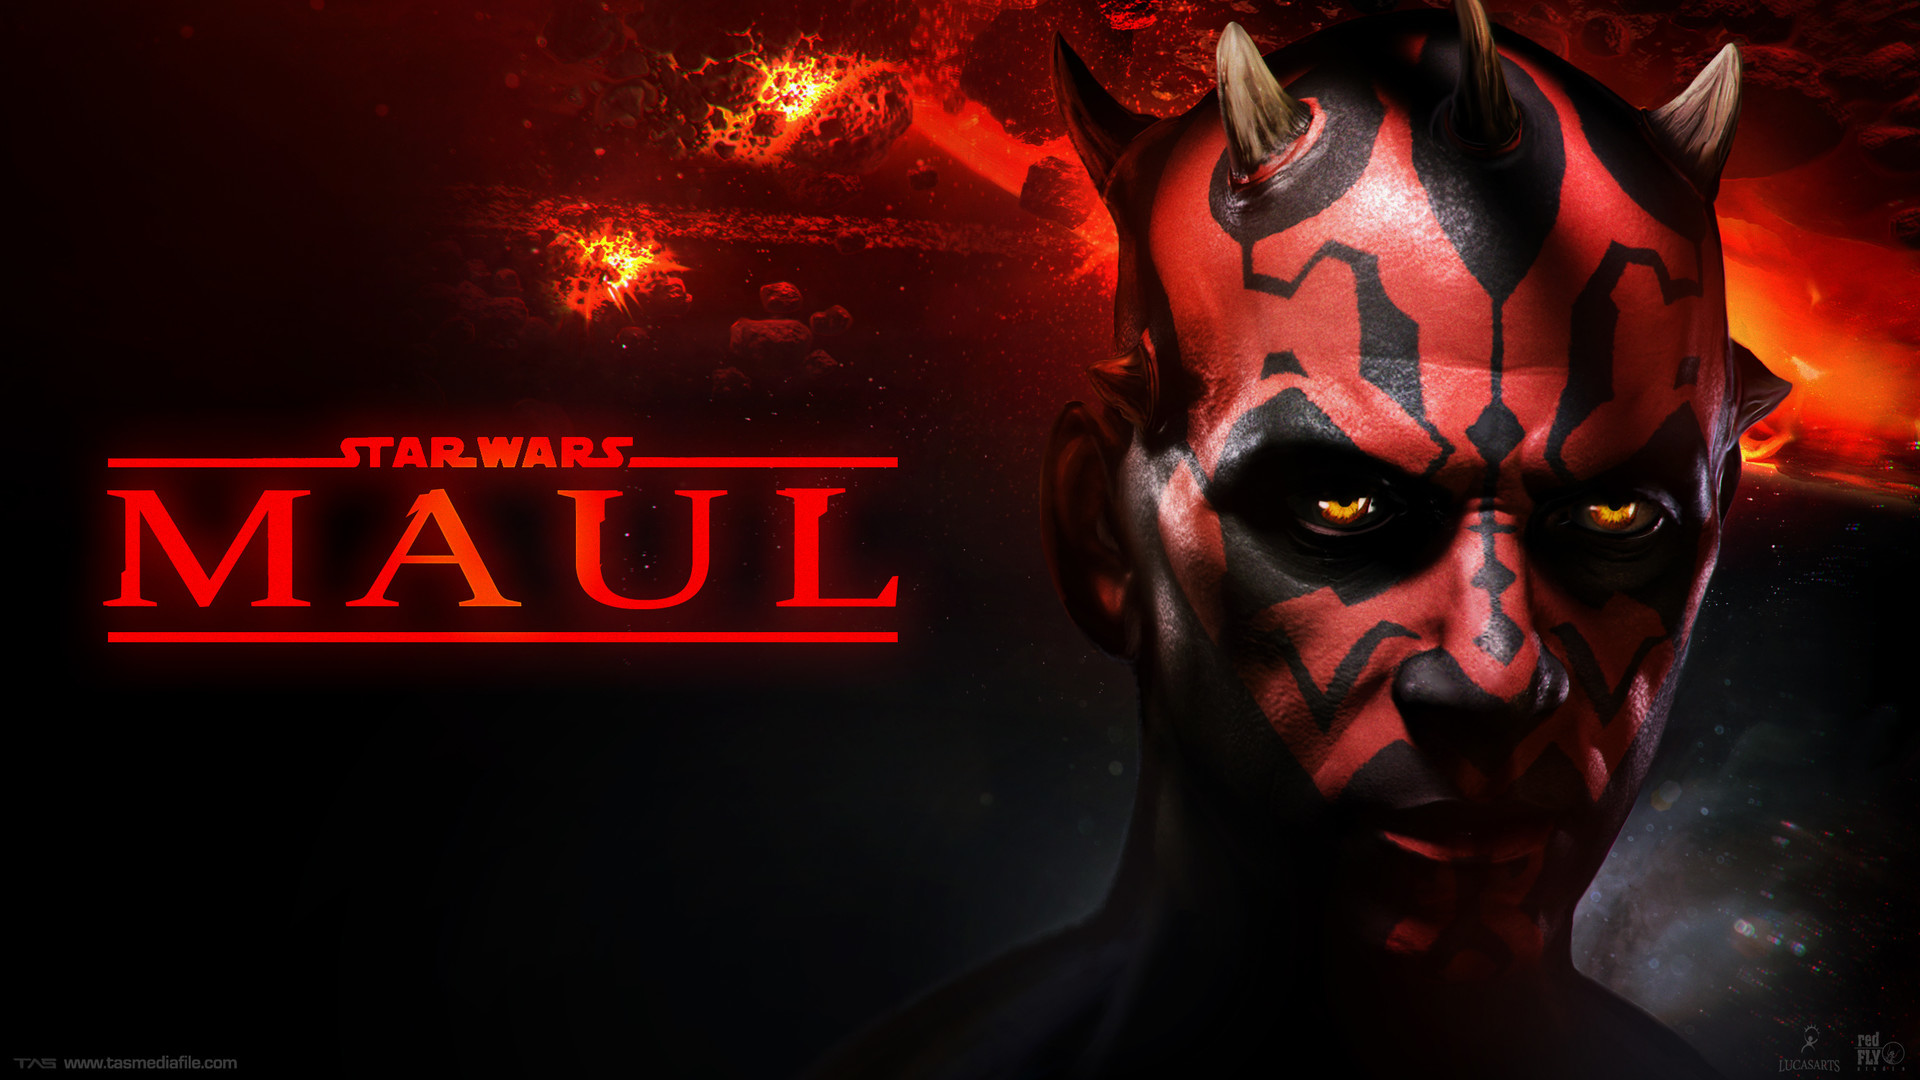 The game, titled Star Wars: Maul, was in development between 2010 and 2011,  but the plug was pulled by LucasArts prior to Lucasfilm's sale to Disney.